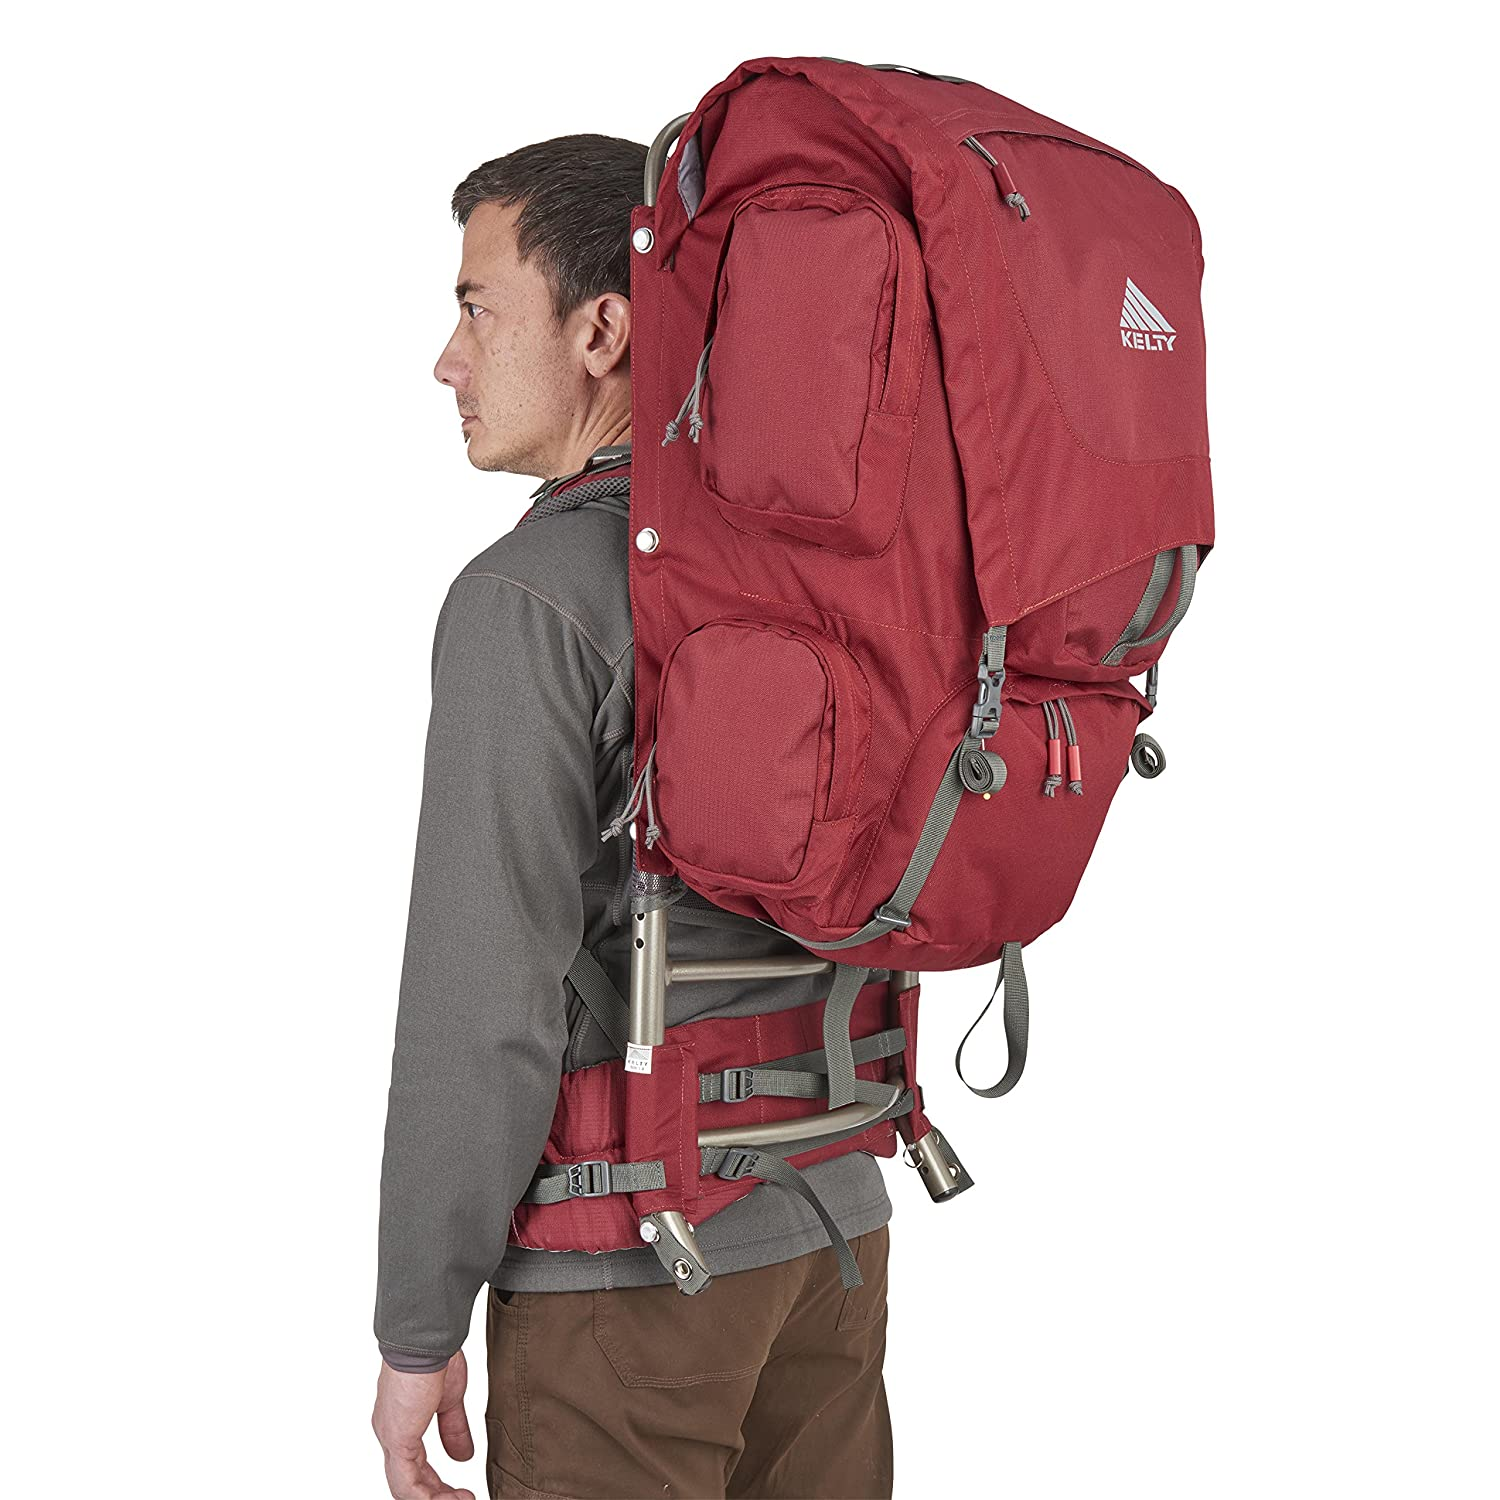 Kelty Trekker - 65 - Mochila, color rojo granate: Amazon.es ...